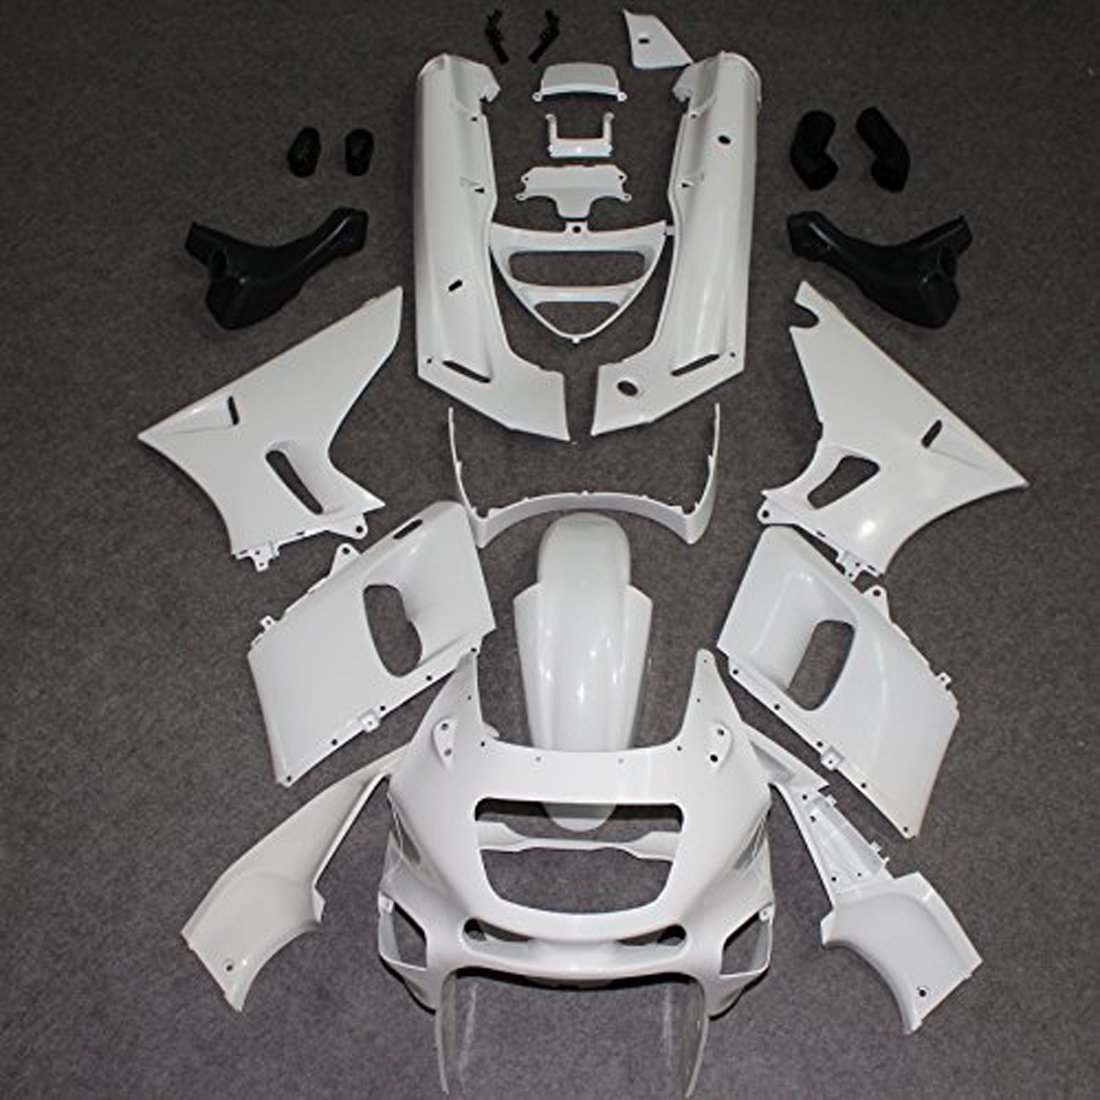 Motorcycle Unpainted Injection Molding Fairing Kit for Kawasaki ZZR 400 ZZR400 1993 2007 06 05 04